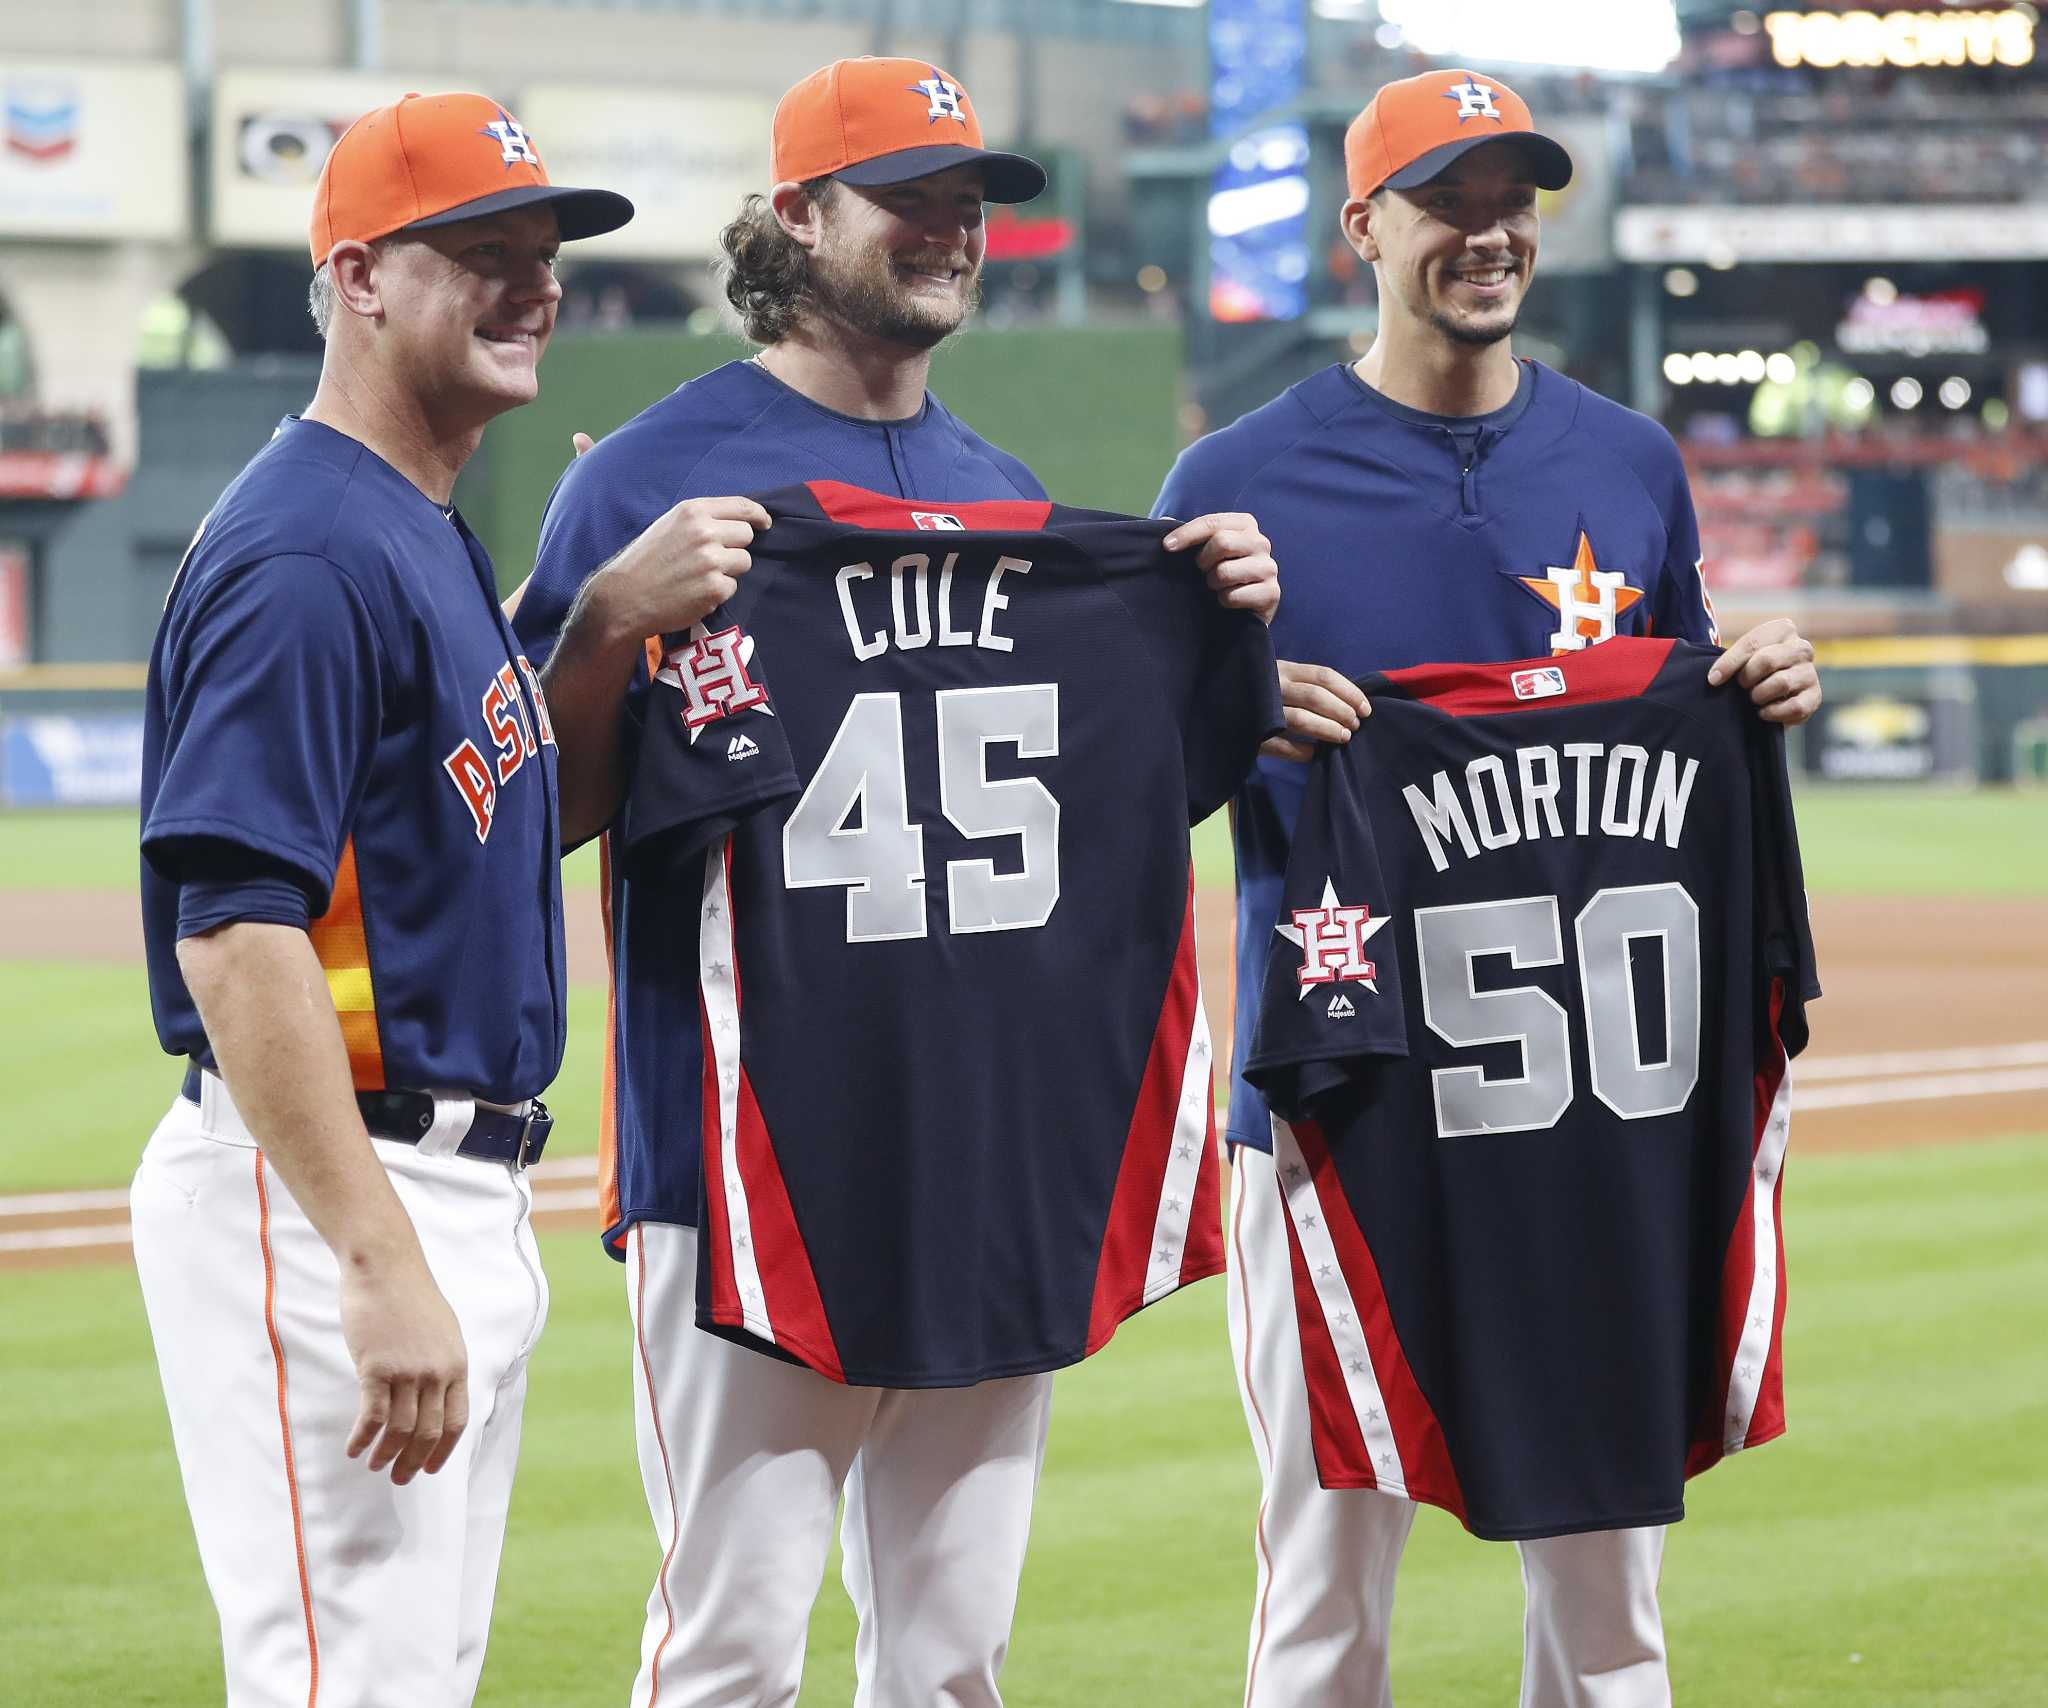 presence on al team is icing on the cake for morton houstonchronicle com https www houstonchronicle com sports astros article presence on al team is icing on the cake for 13080403 php